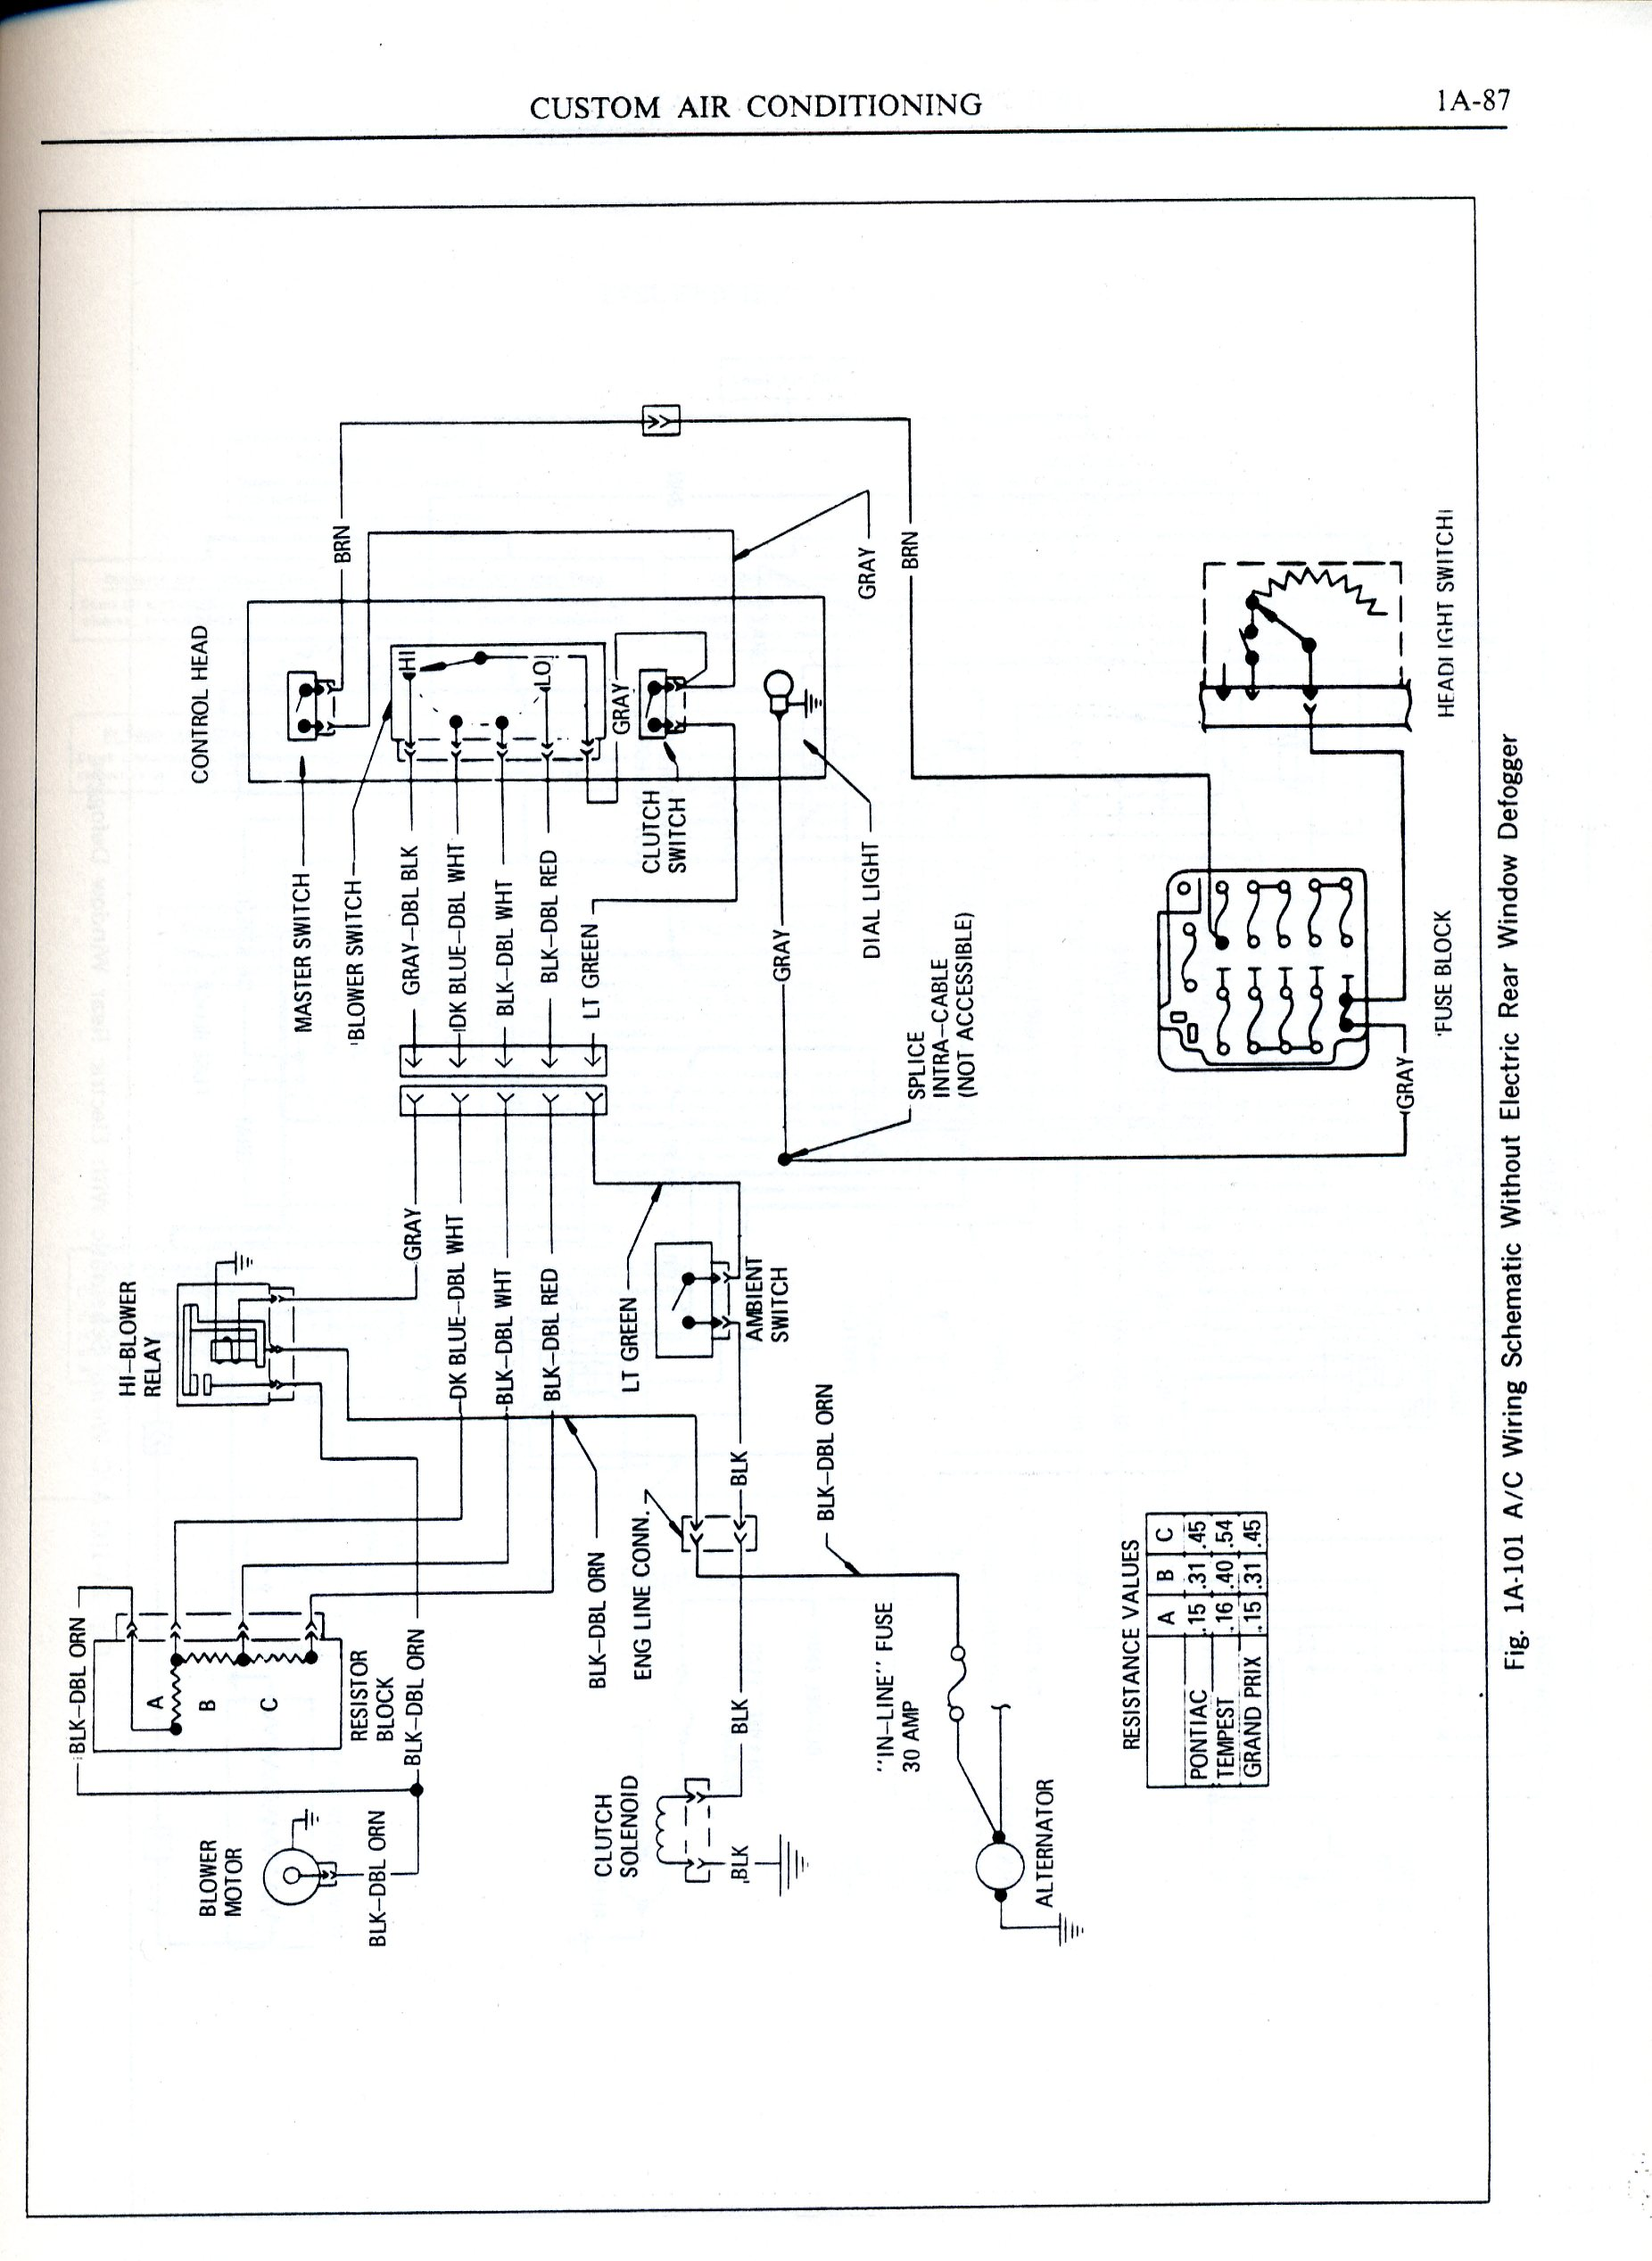 wiring diagram 1970 pontiac lemans wiring wiring diagrams online 1970 lemans wiring diagram pontiac gto forum